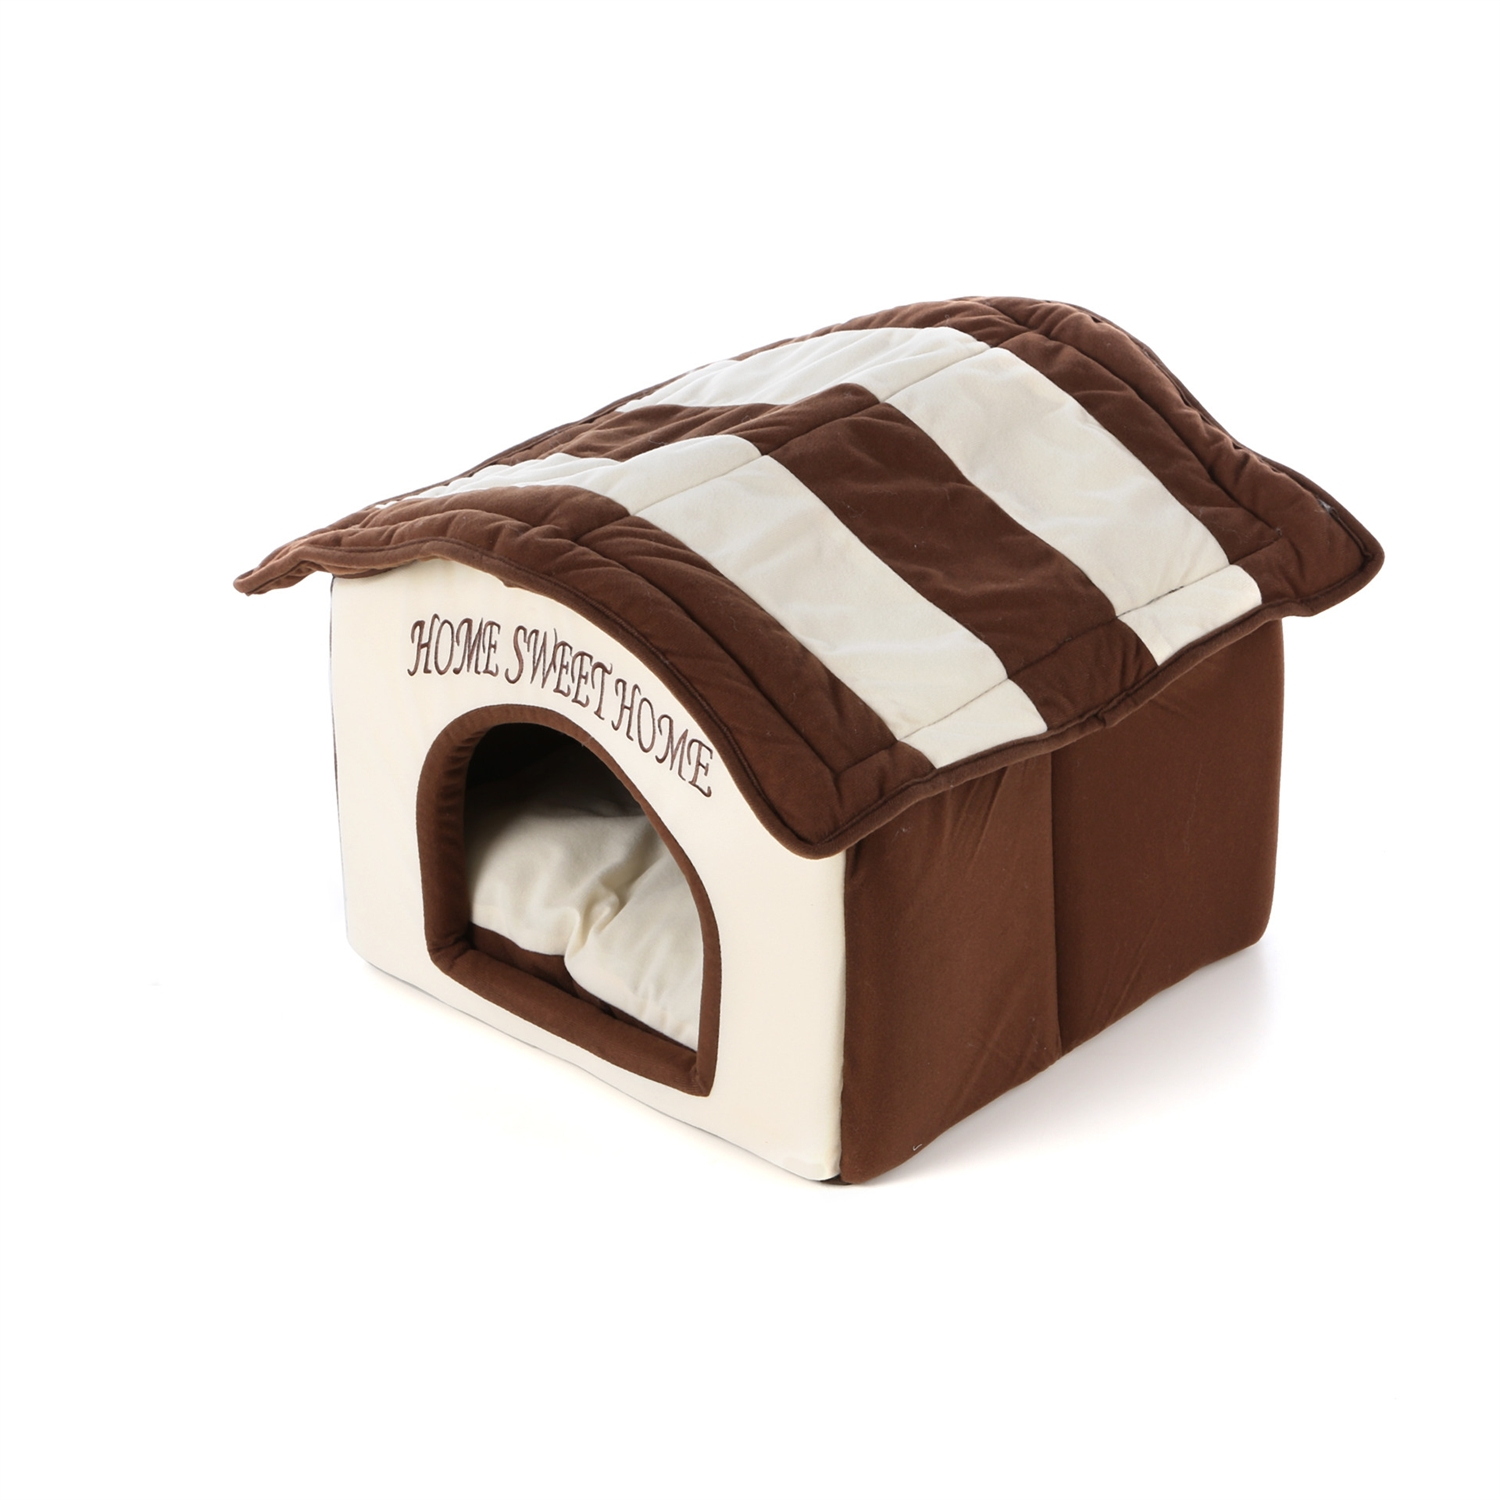 Home Sweet Home Dog Dome Dog Bed - Machine Washable ...